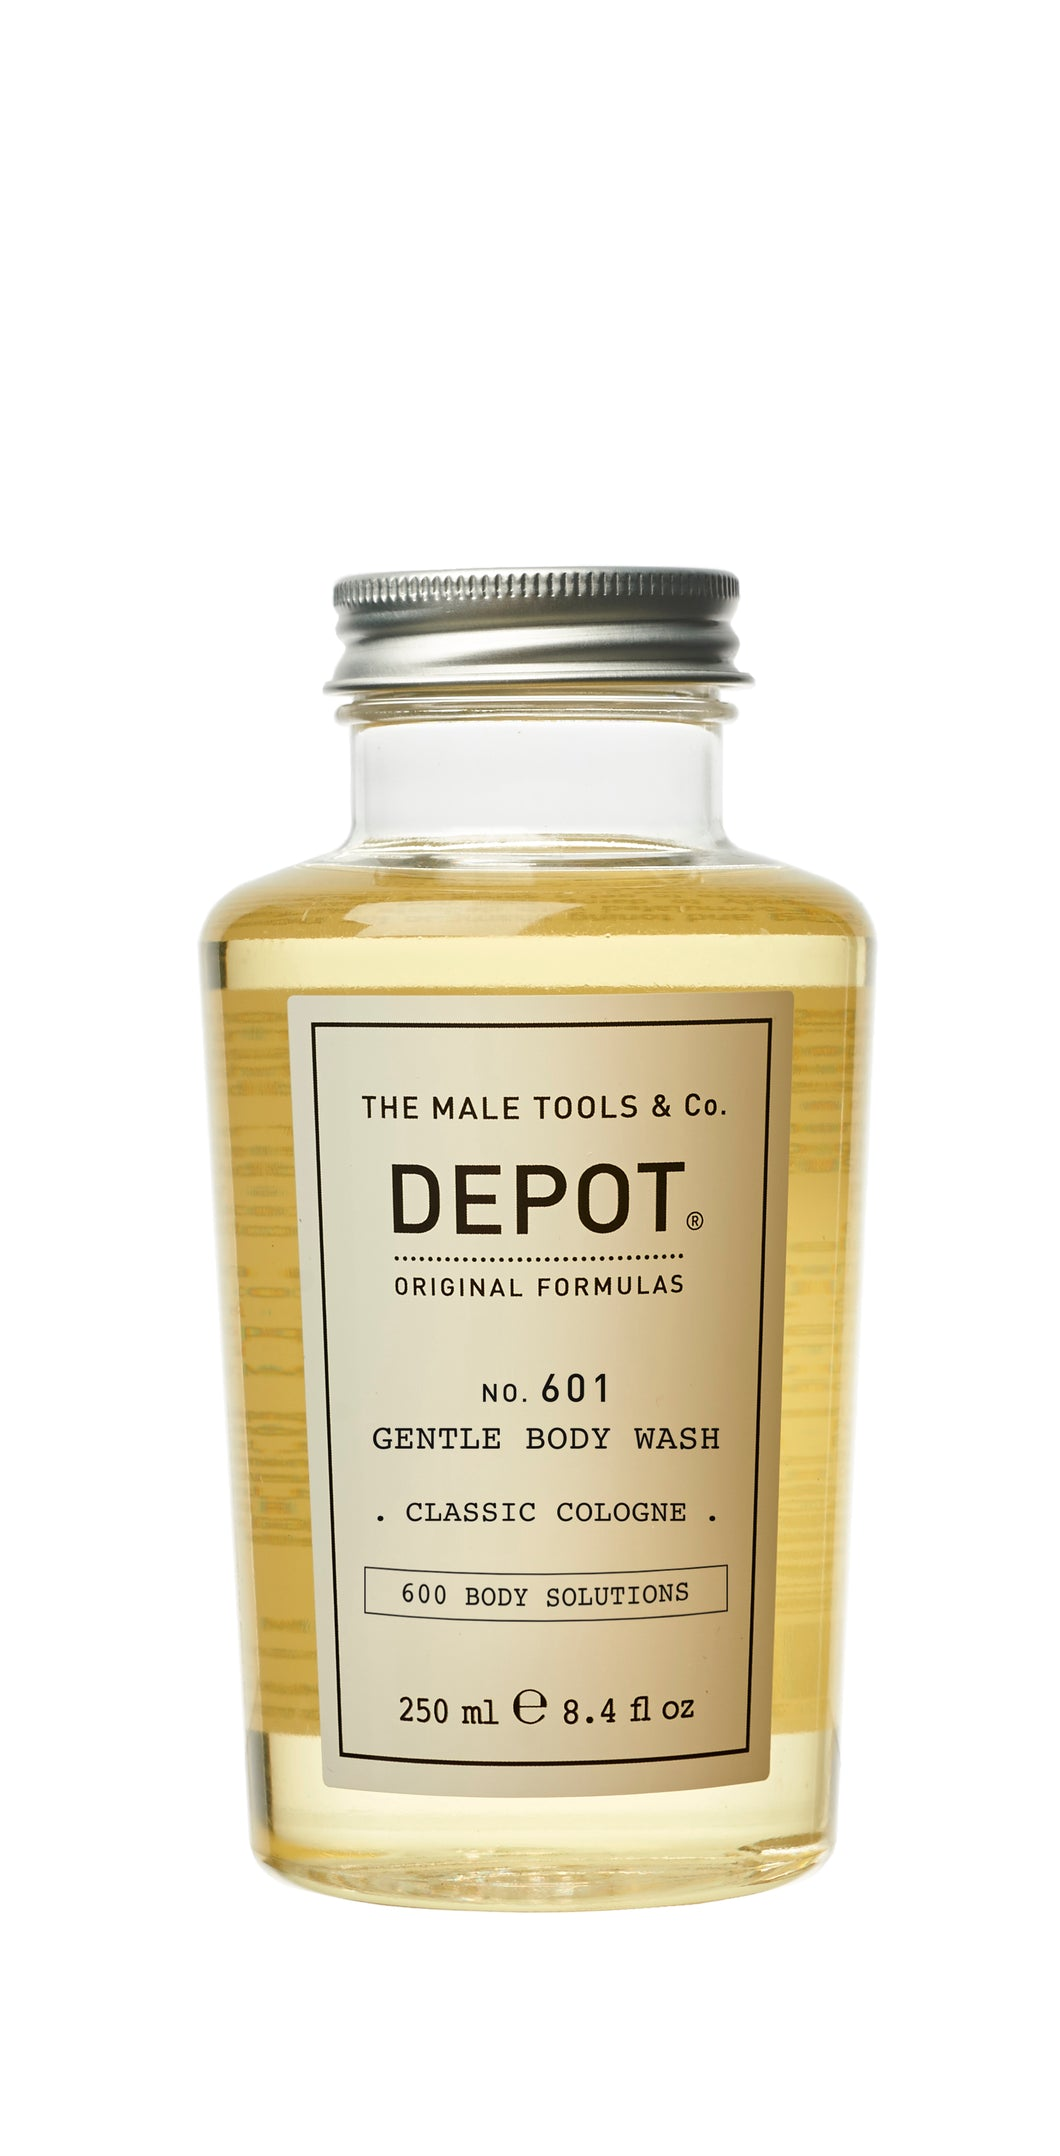 DEPOT MALE TOOL NO. 601 GENTLE BODY WASH Classic Colonge